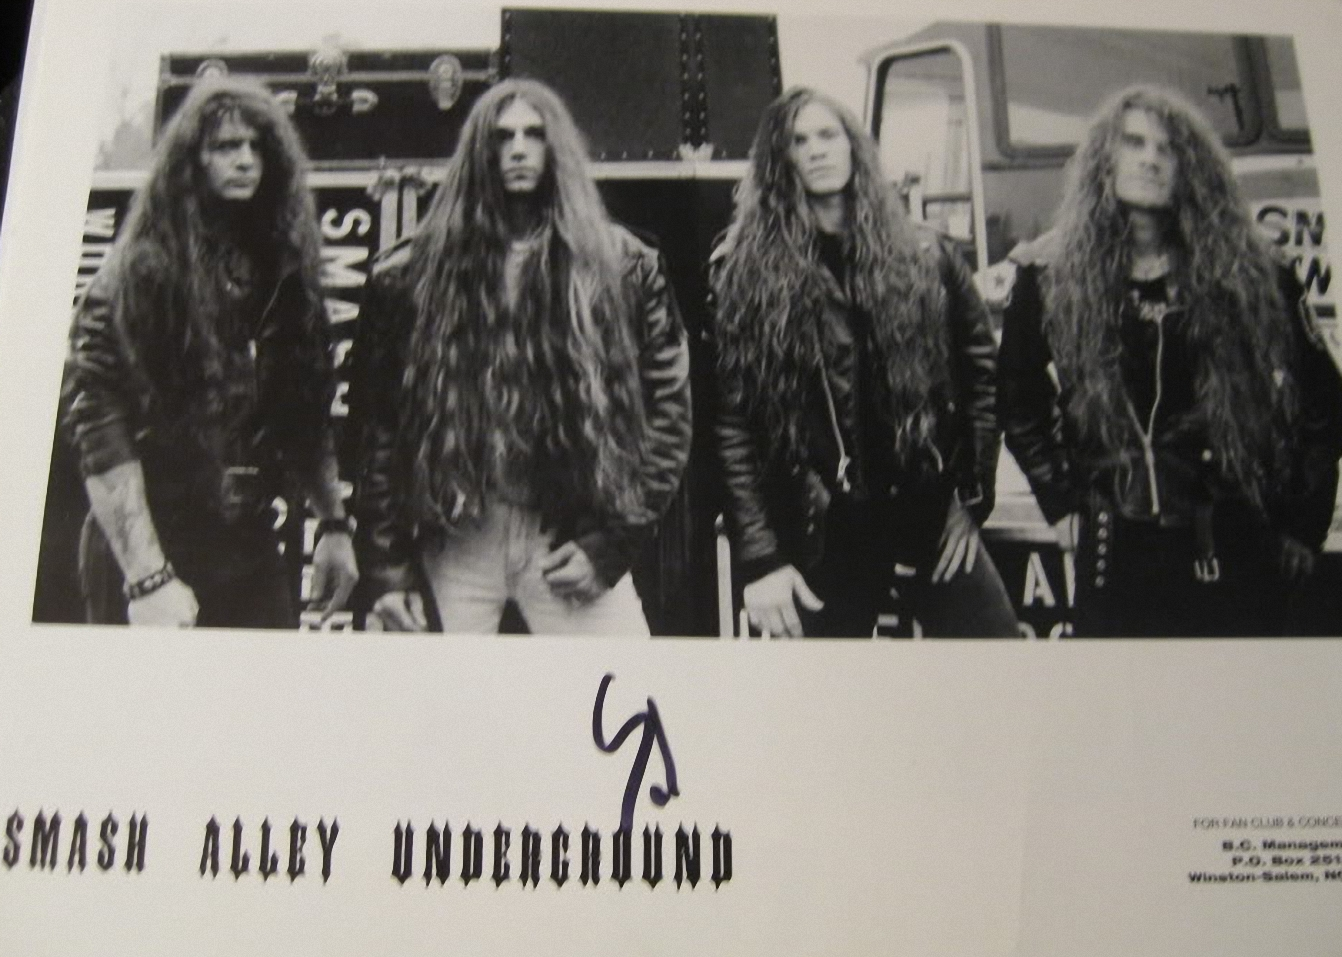 Smash Alley Underground - Rising From The Shadows 1995